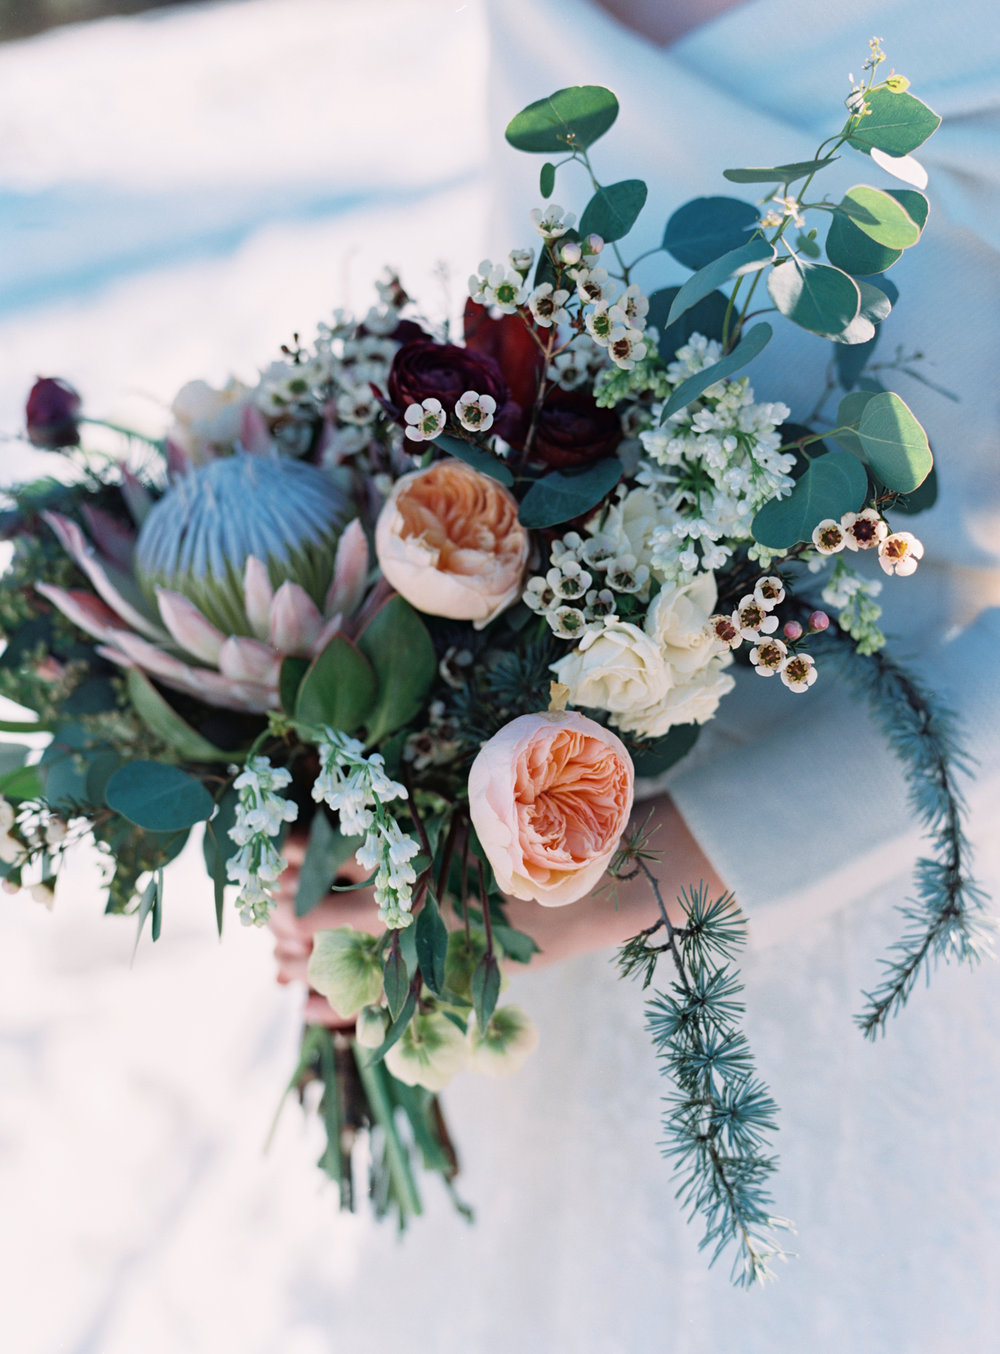 SKI Winter themed wedding ideas copper themed_010.jpg